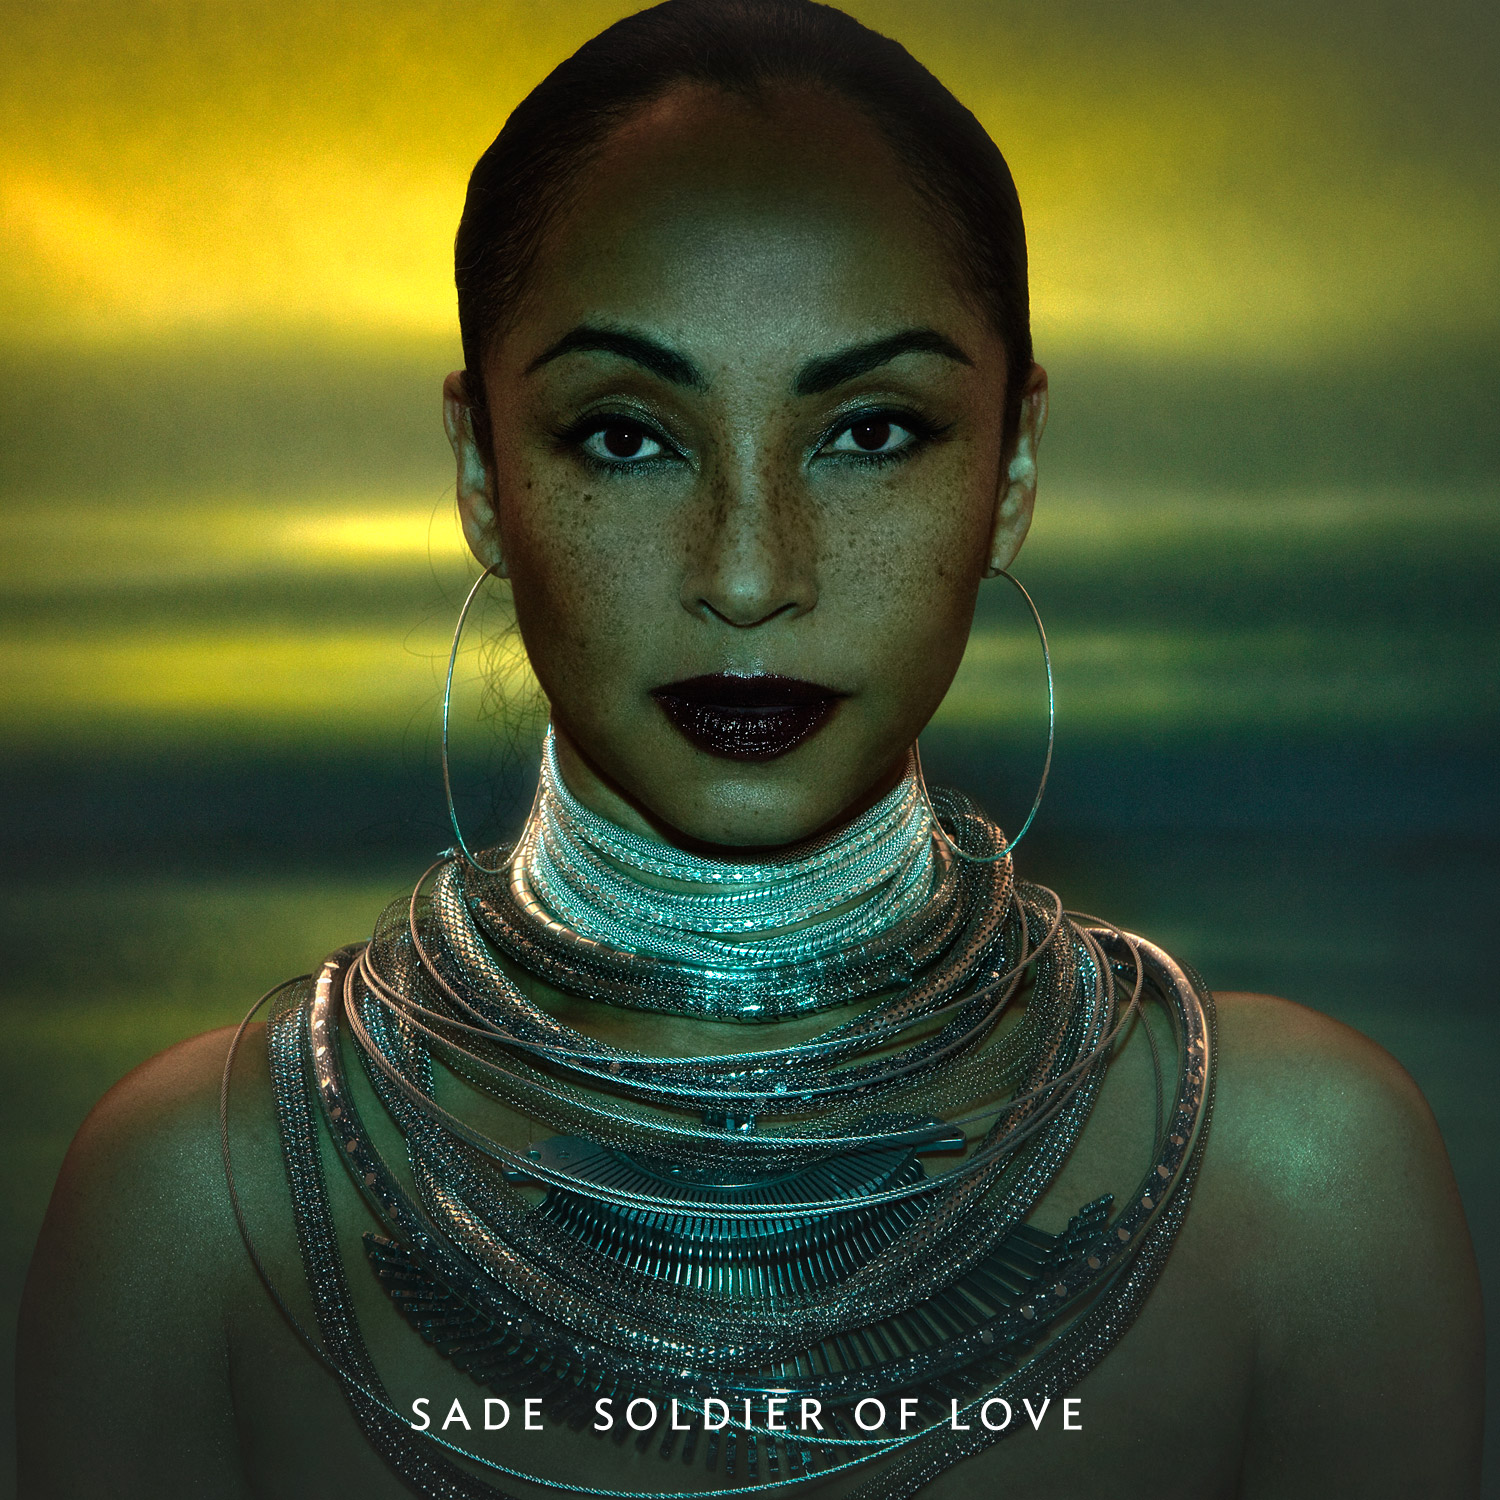 Sade Wallpaper http://thewallpapers.co.uk/?s=Sade